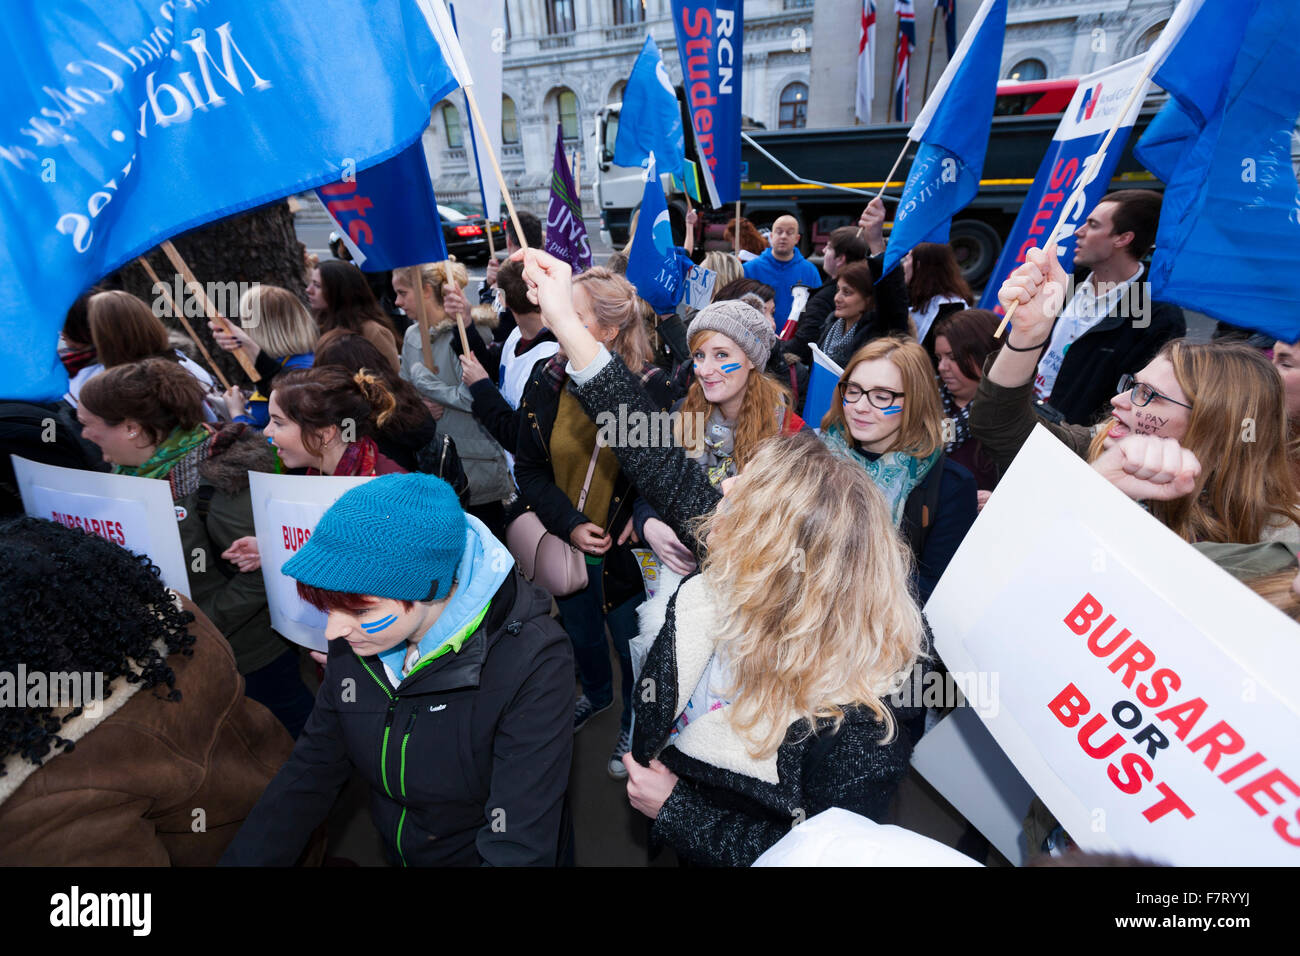 London, UK. 02nd Dec, 2015. 'Bursary or Bust' protest by student health workers: London, on December 2, - Stock Image